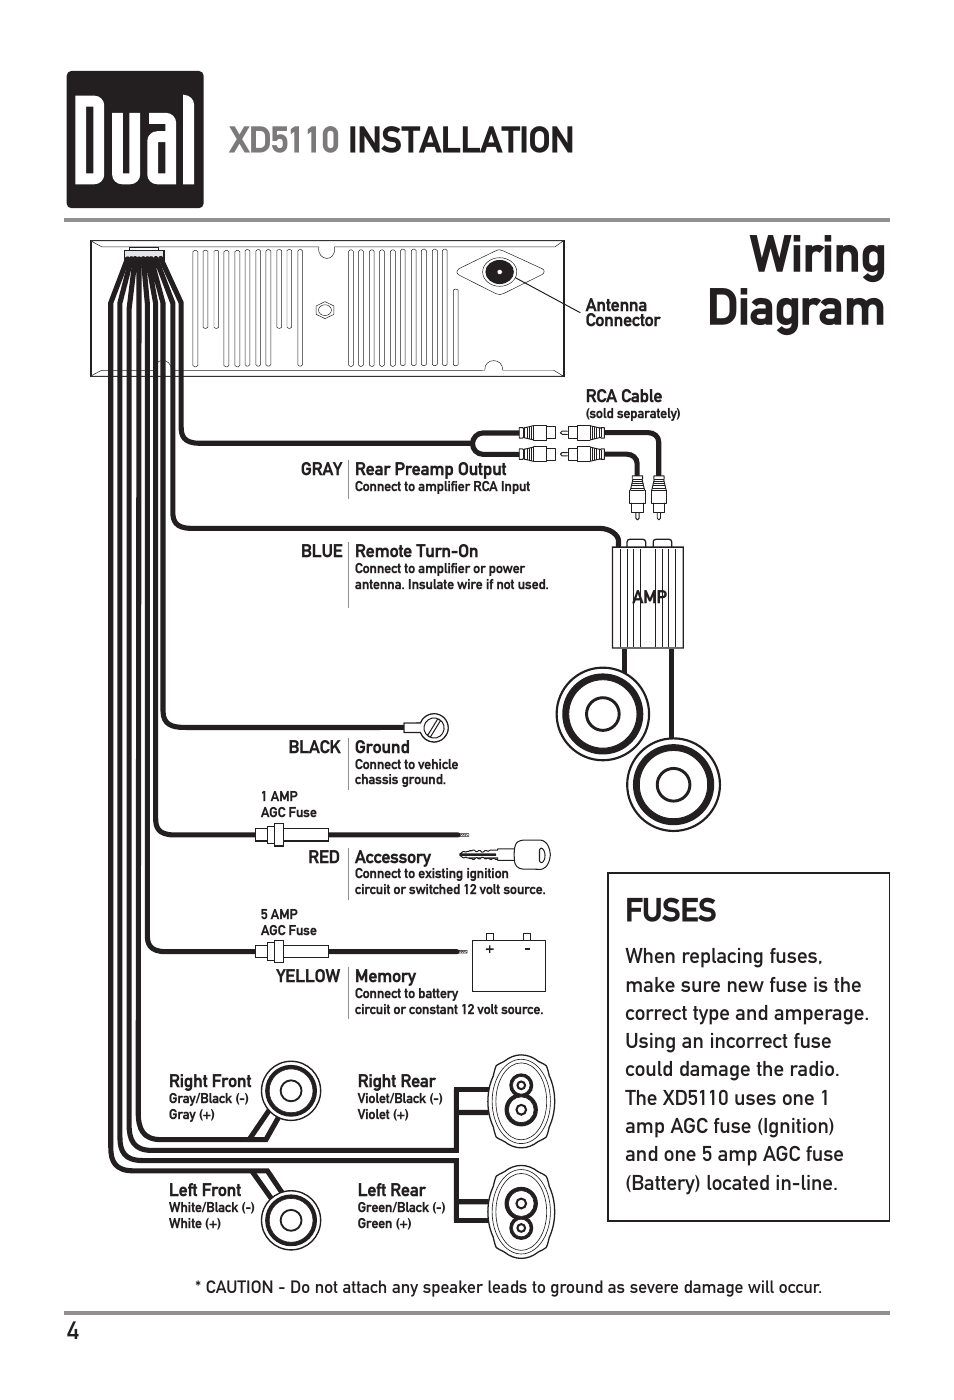 12 amp agc fuse wiring diagrams